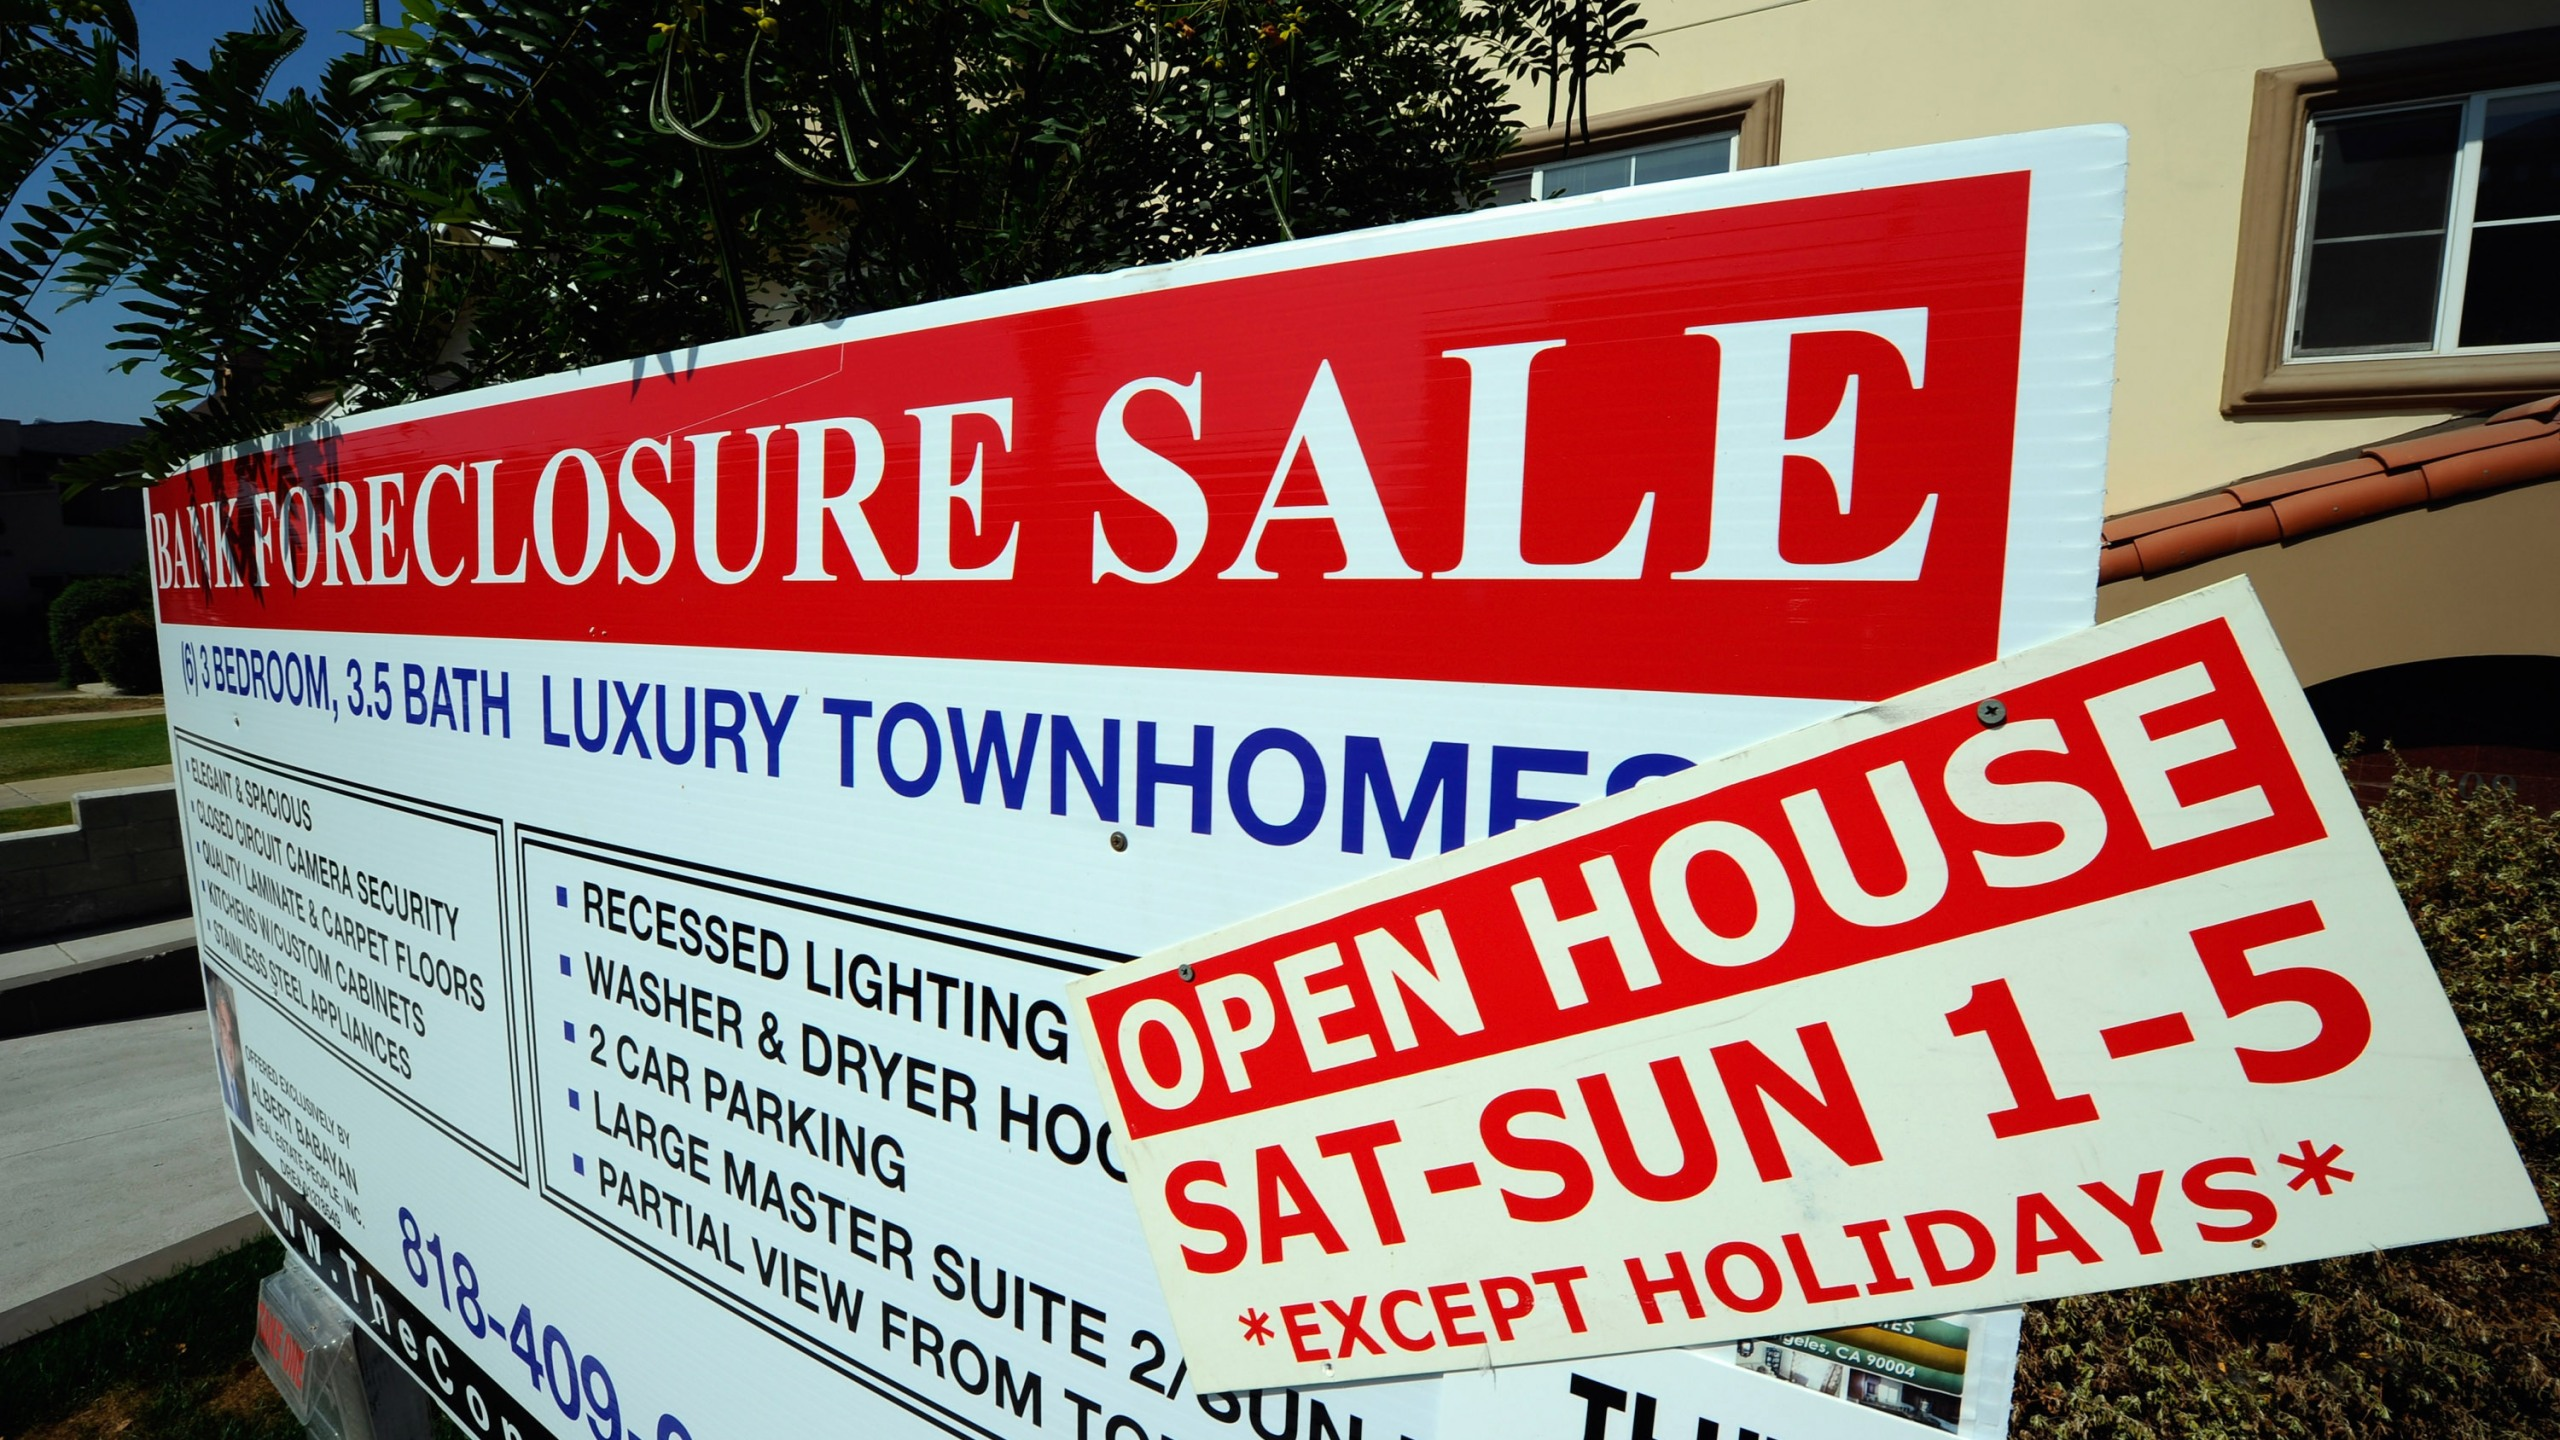 "A ""bank foreclosure sale"" sign is posted in front of townhomes in Los Angeles on Aug. 12, 2010. (Credit: Kevork Djansezian / Getty Images)"